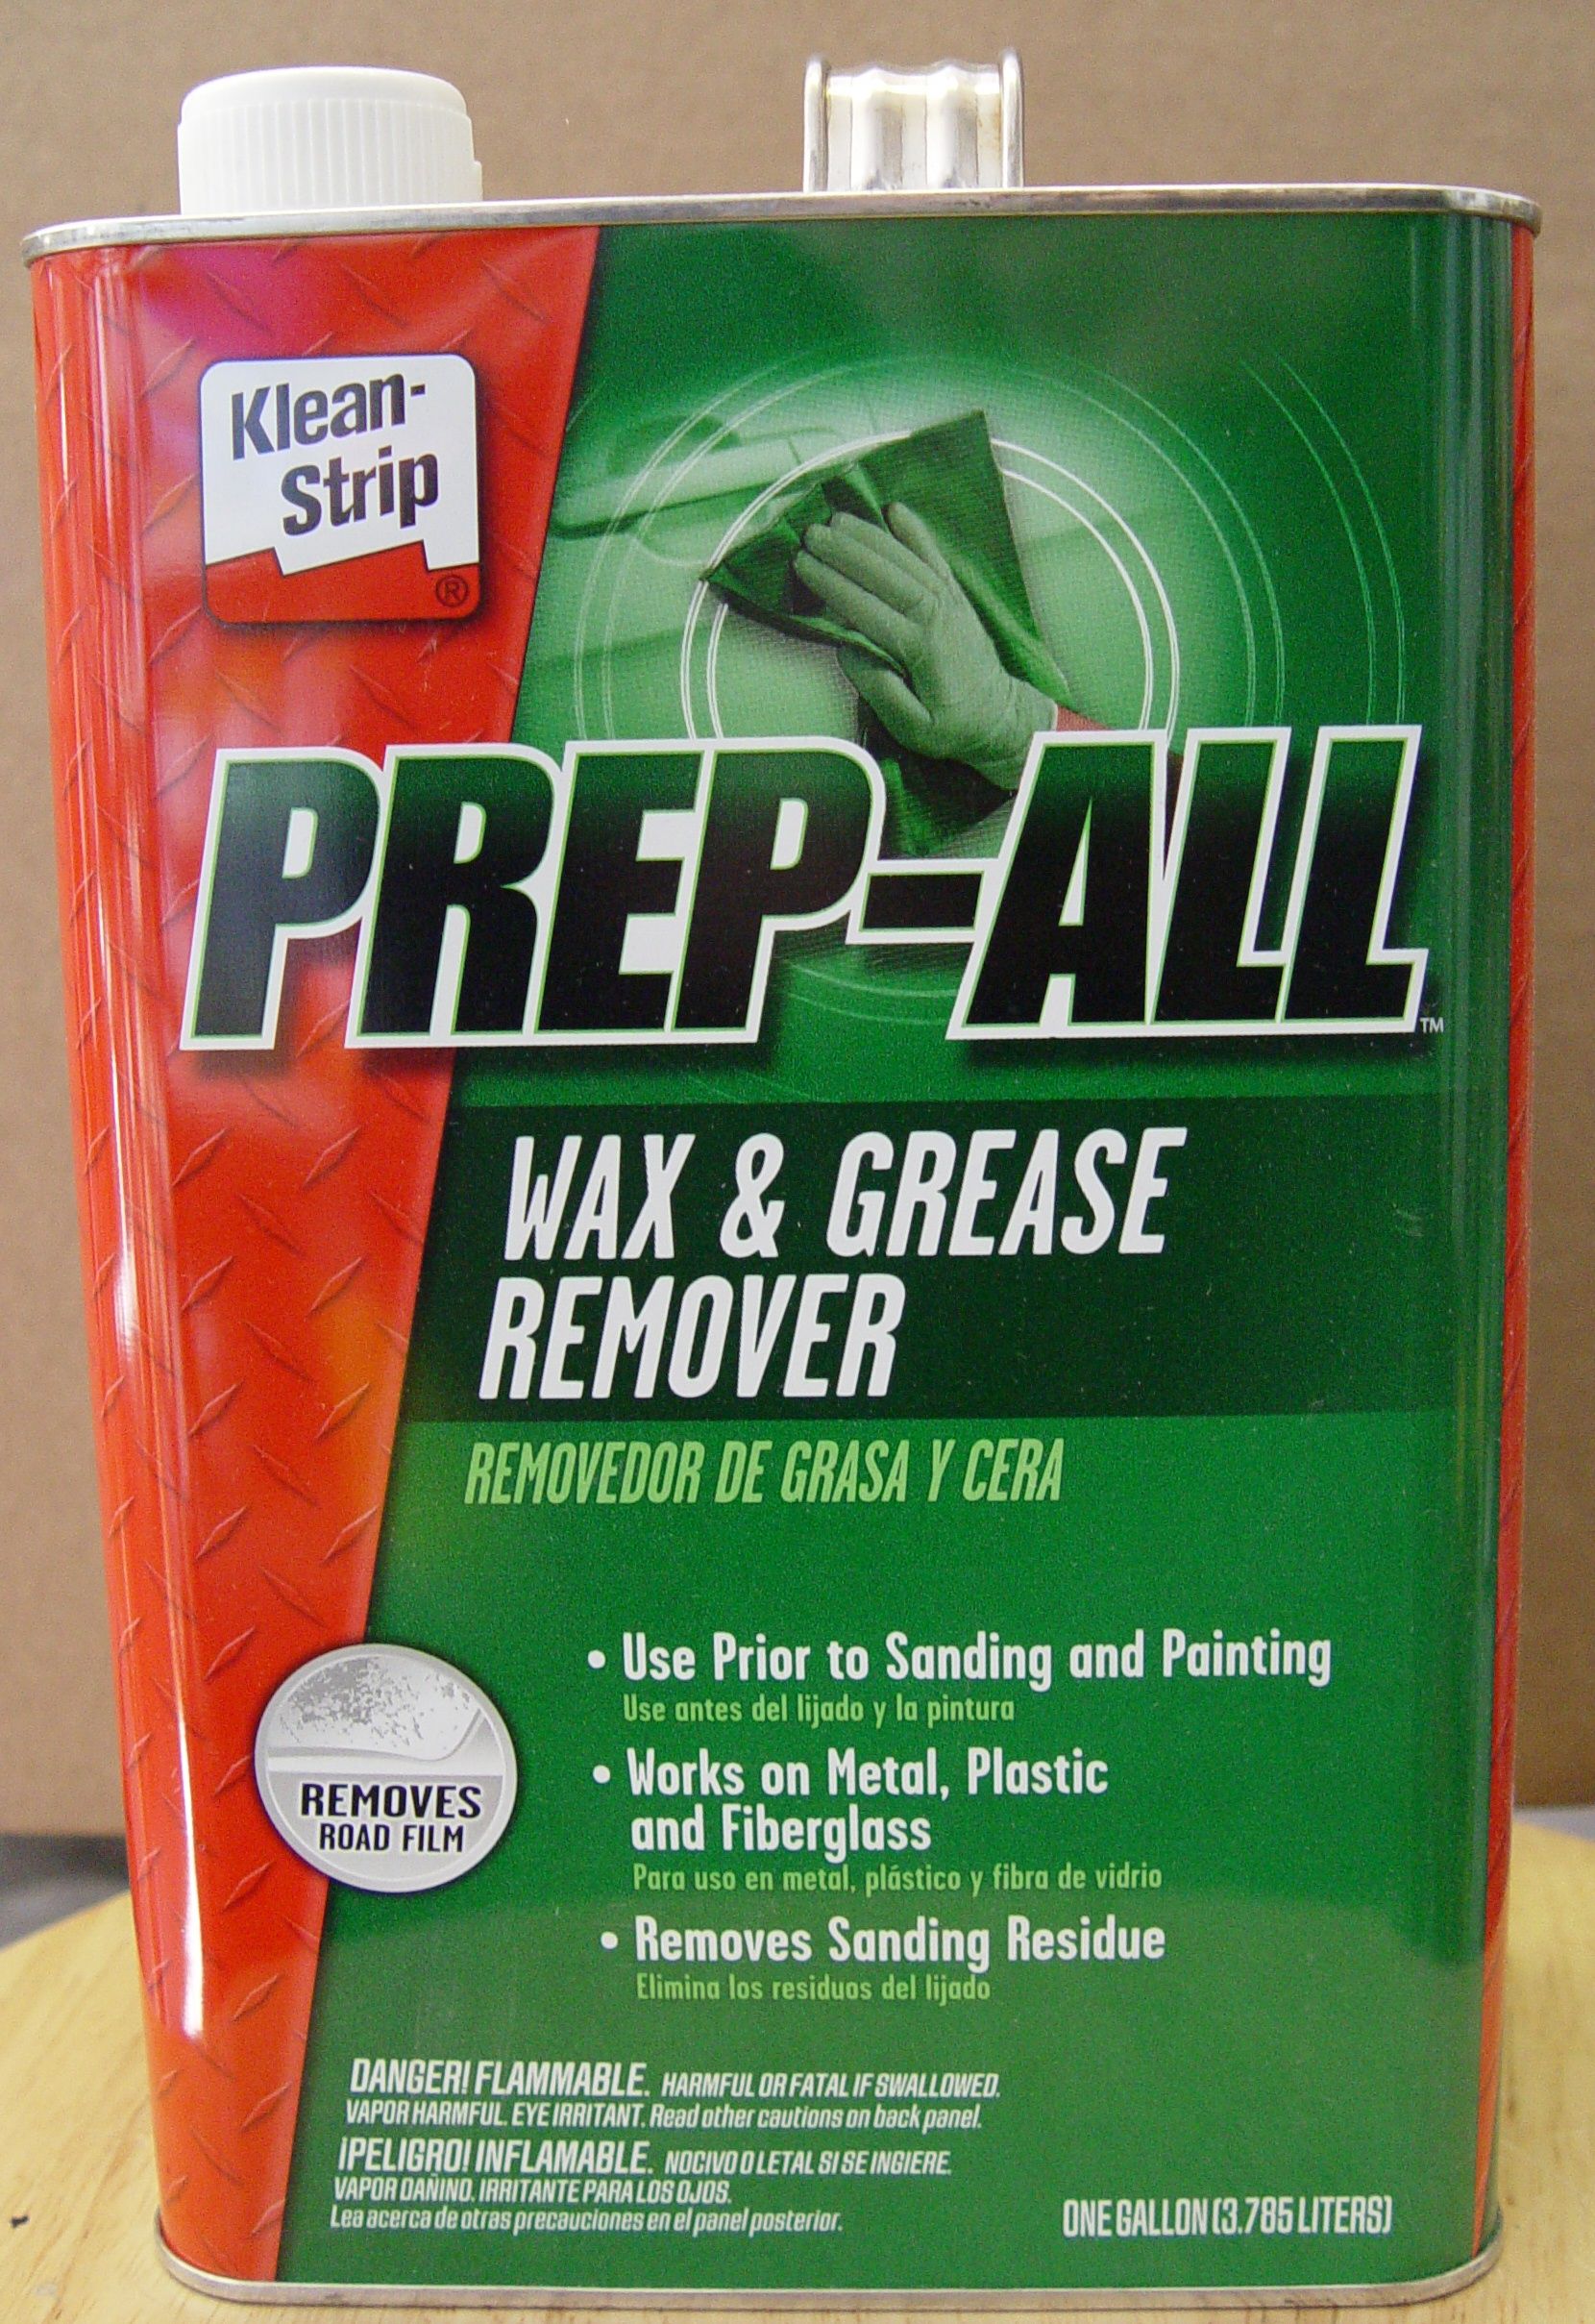 Kleen Strip Prep All Grease and Wax Remover